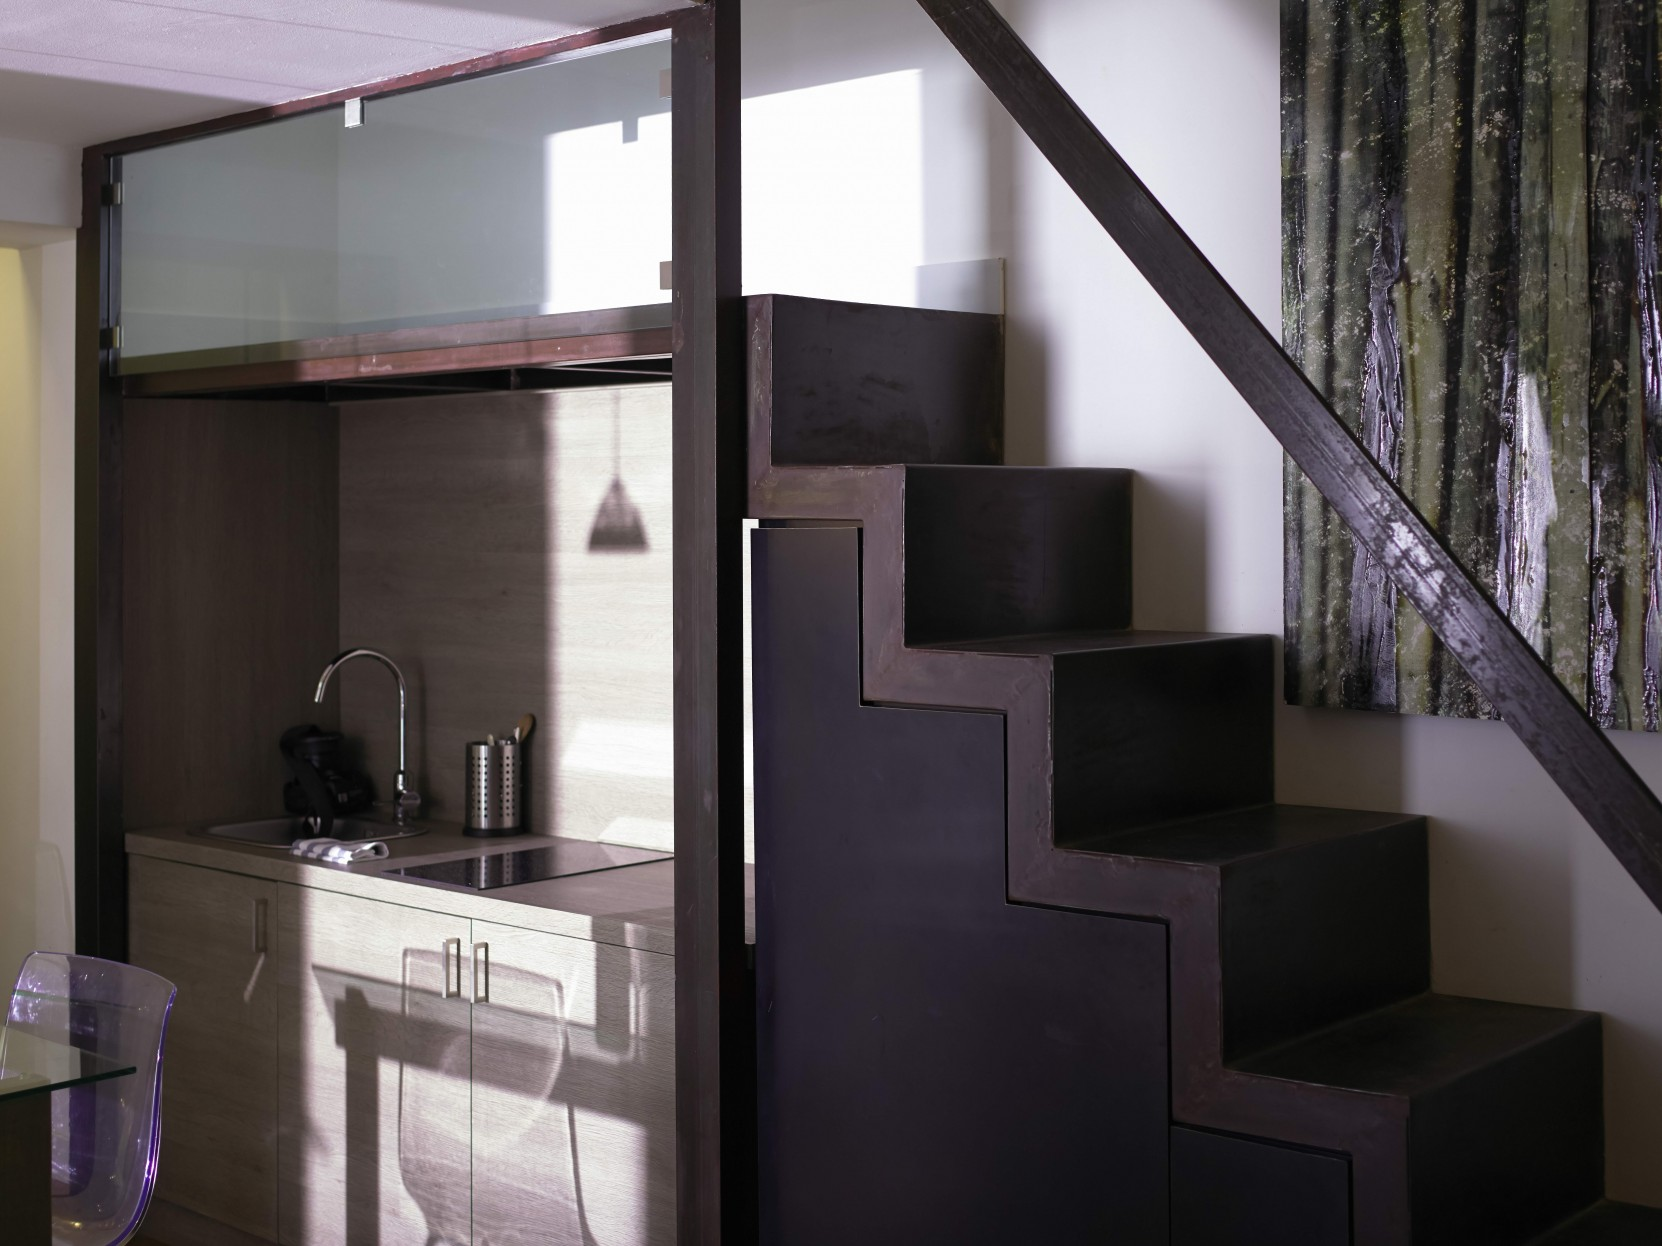 Kitchen space at Piazzo Trento Apartments